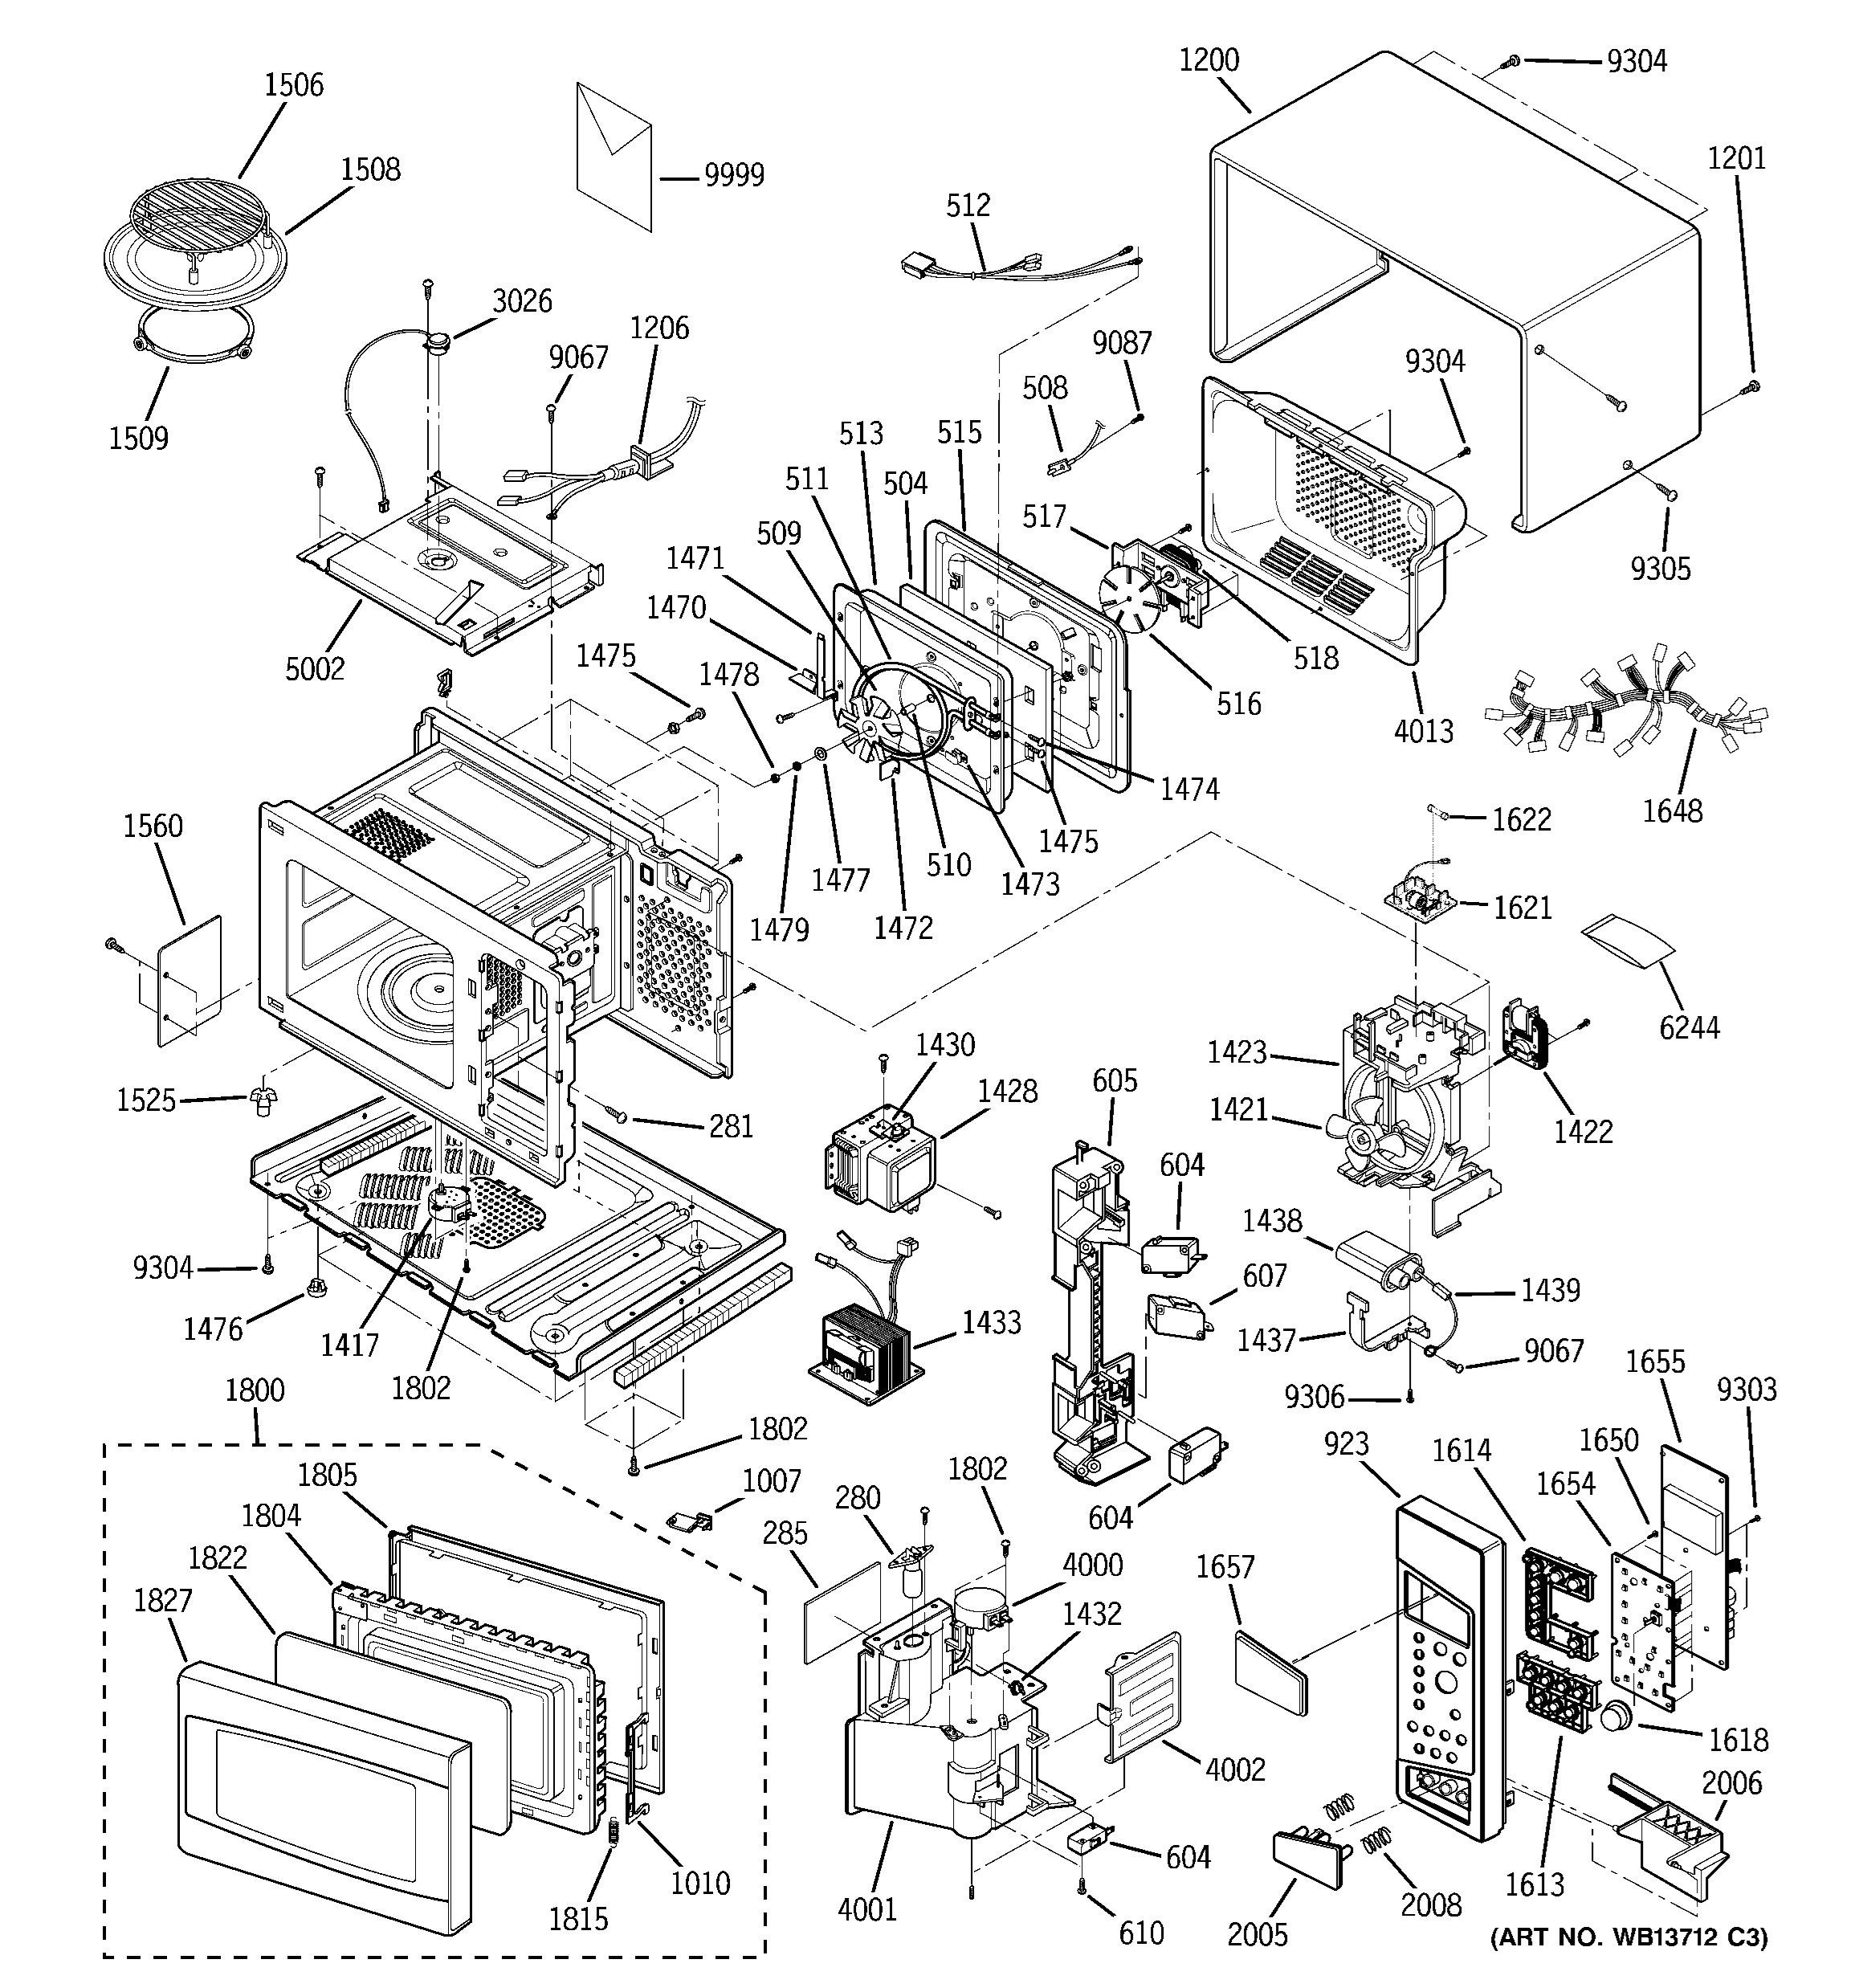 Magnificent Drawing Cub Cadet Wiring Diagram Sample Images ...